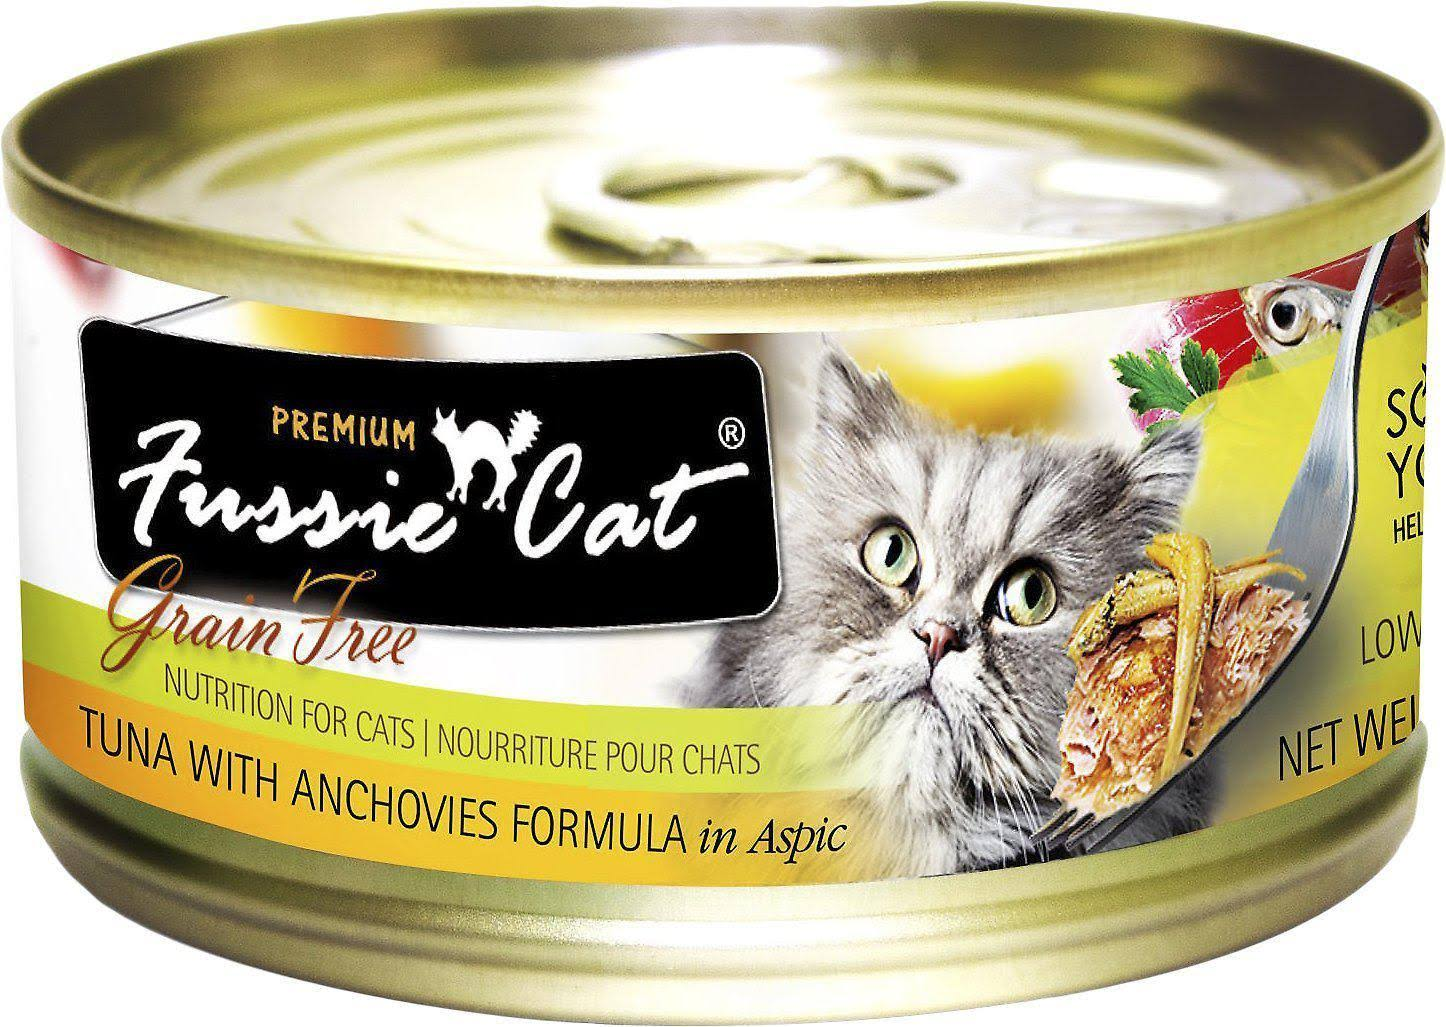 Fussie Cat Grain Free Tuna & Anchovy Can Cat Food - 2.8 oz can